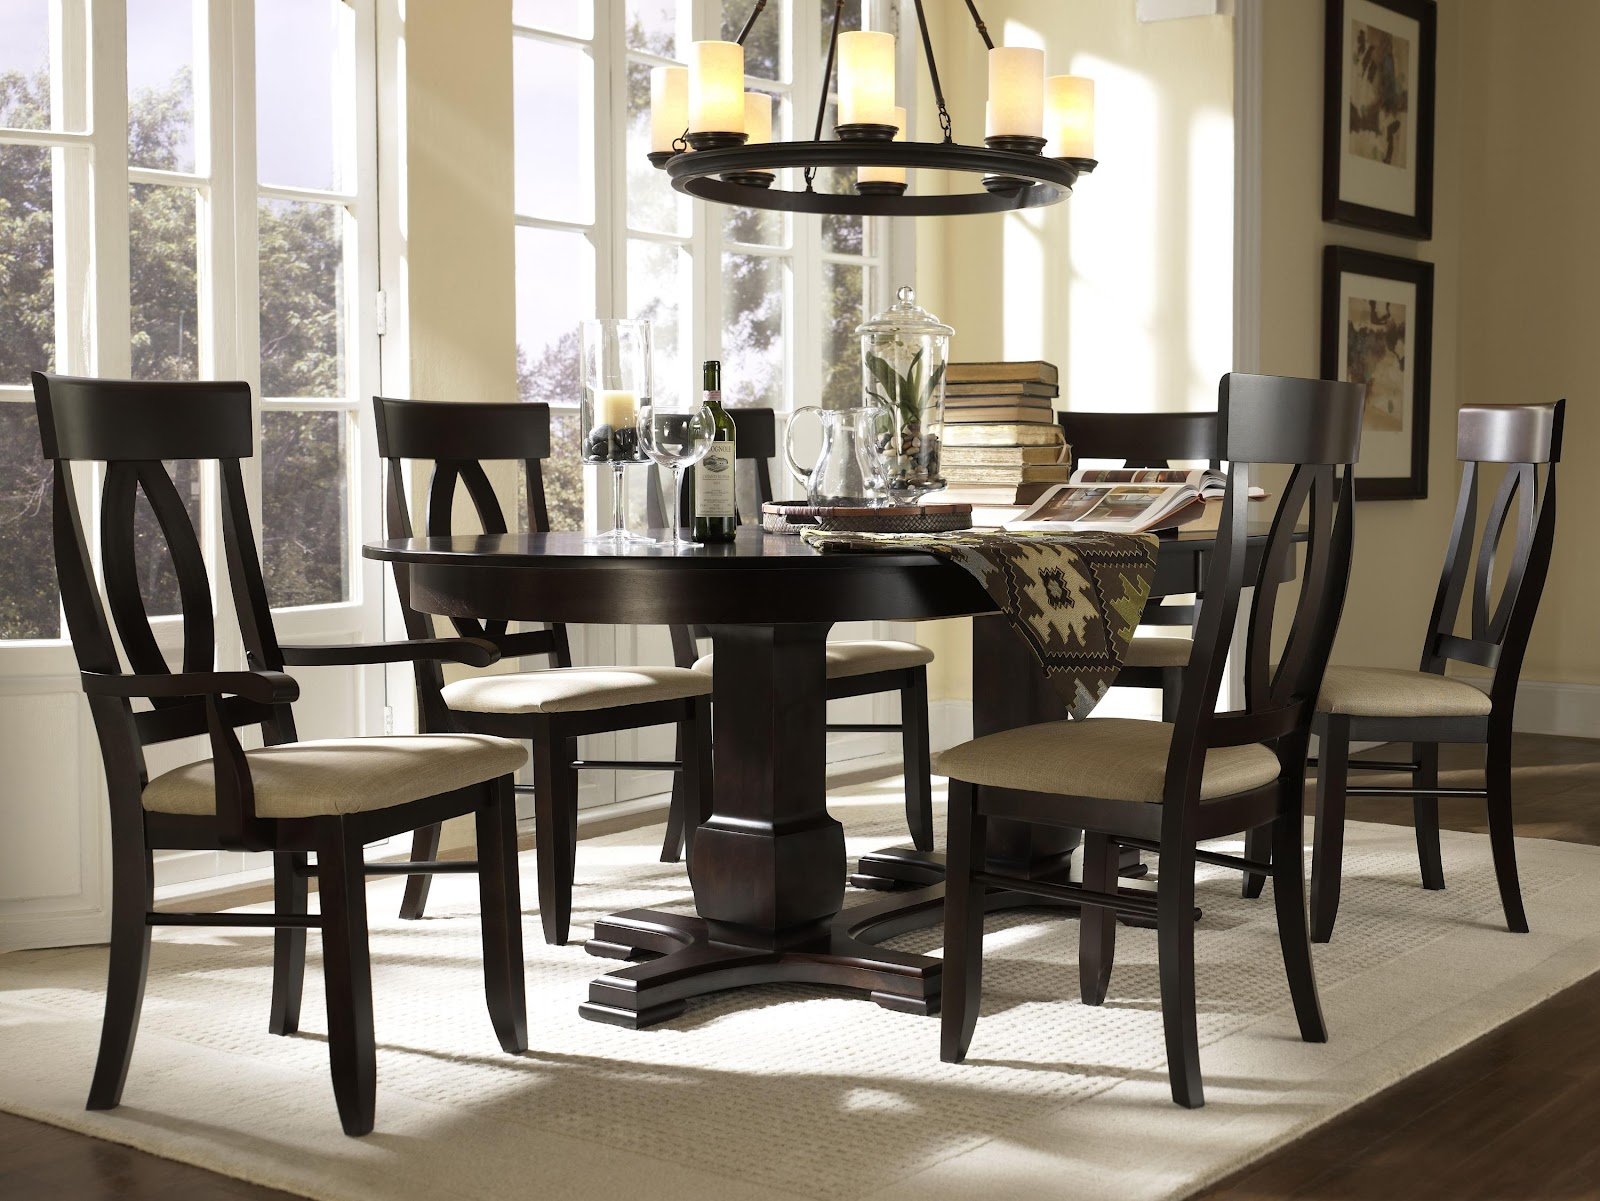 Canadel furniture long island new york ny dining room for New dining room sets